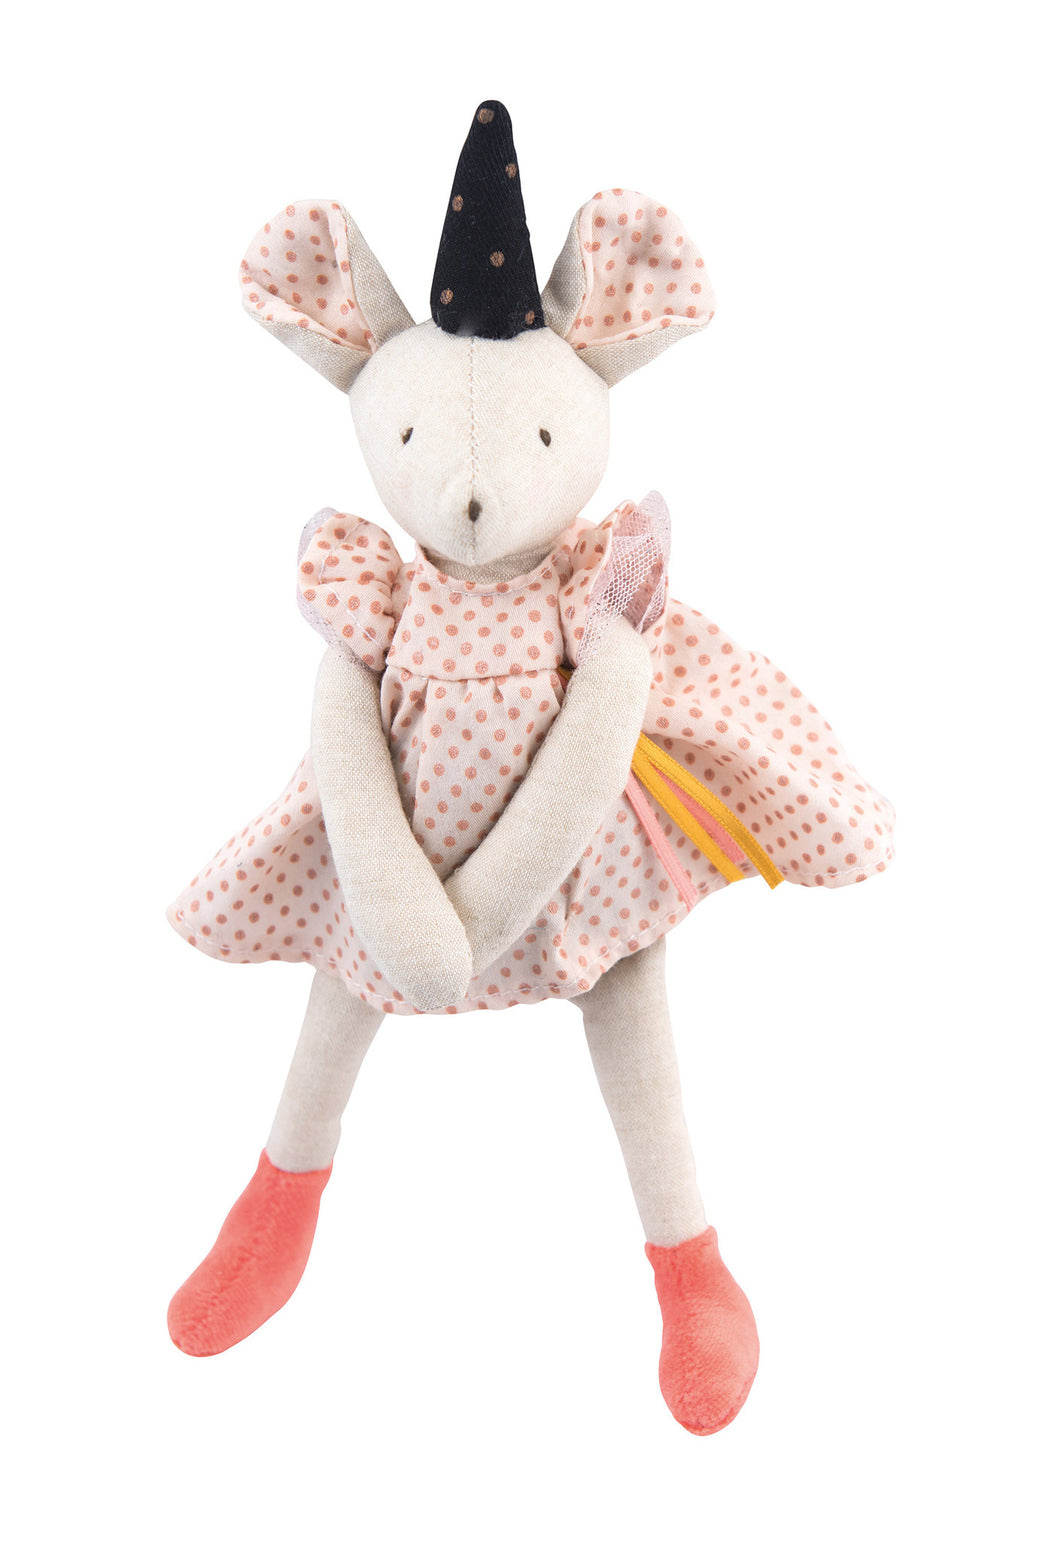 Moulin Roty - Il Etait une Fois - pointy hat mouse